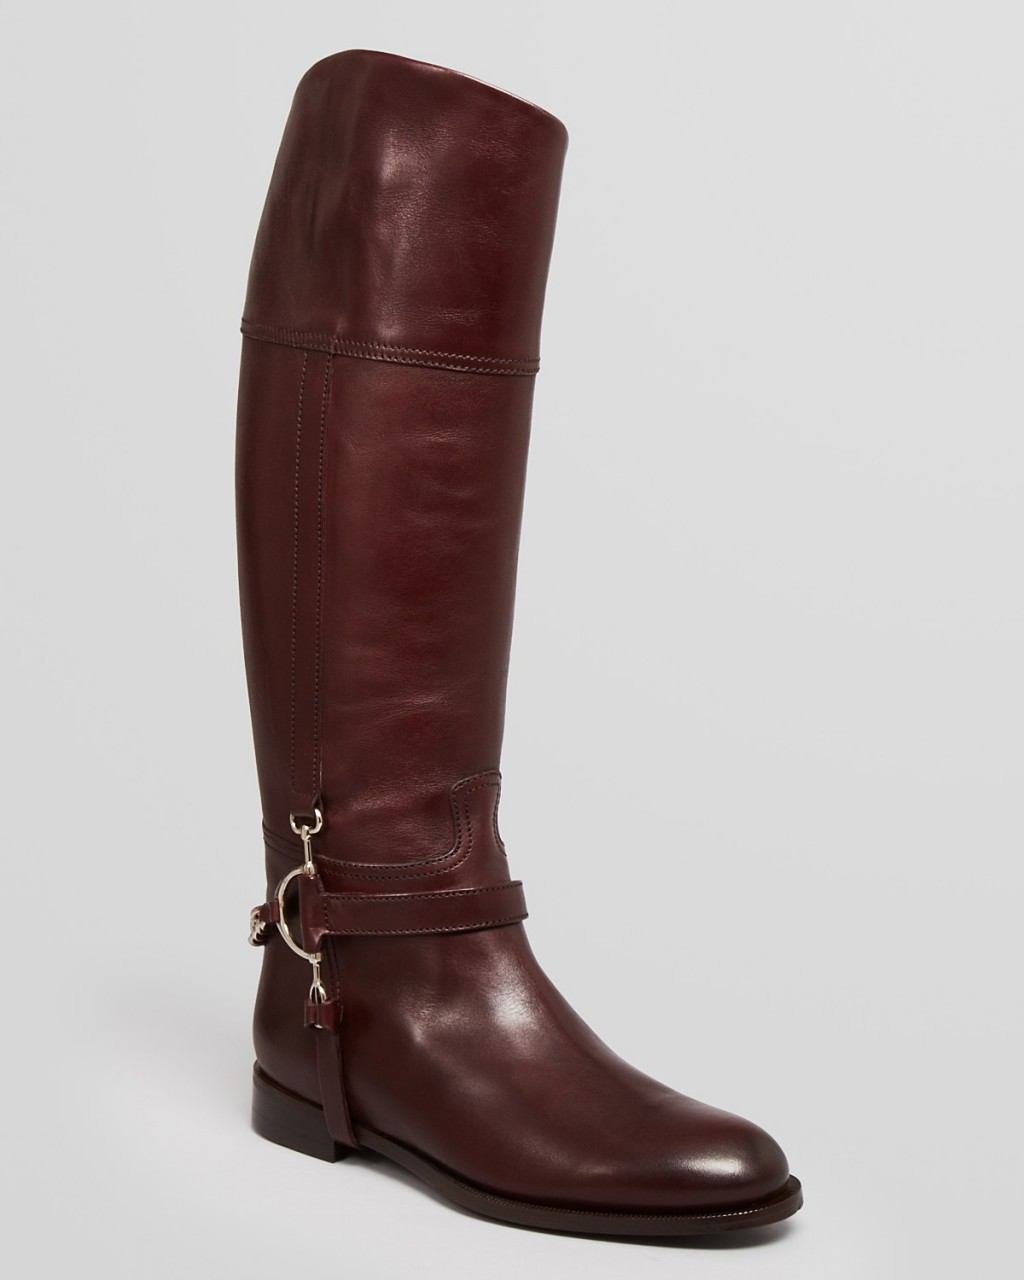 Shoes , Charming Ralph Lauren Riding Boots DswImage Gallery :  Brown Mens Riding Boots Image Collection